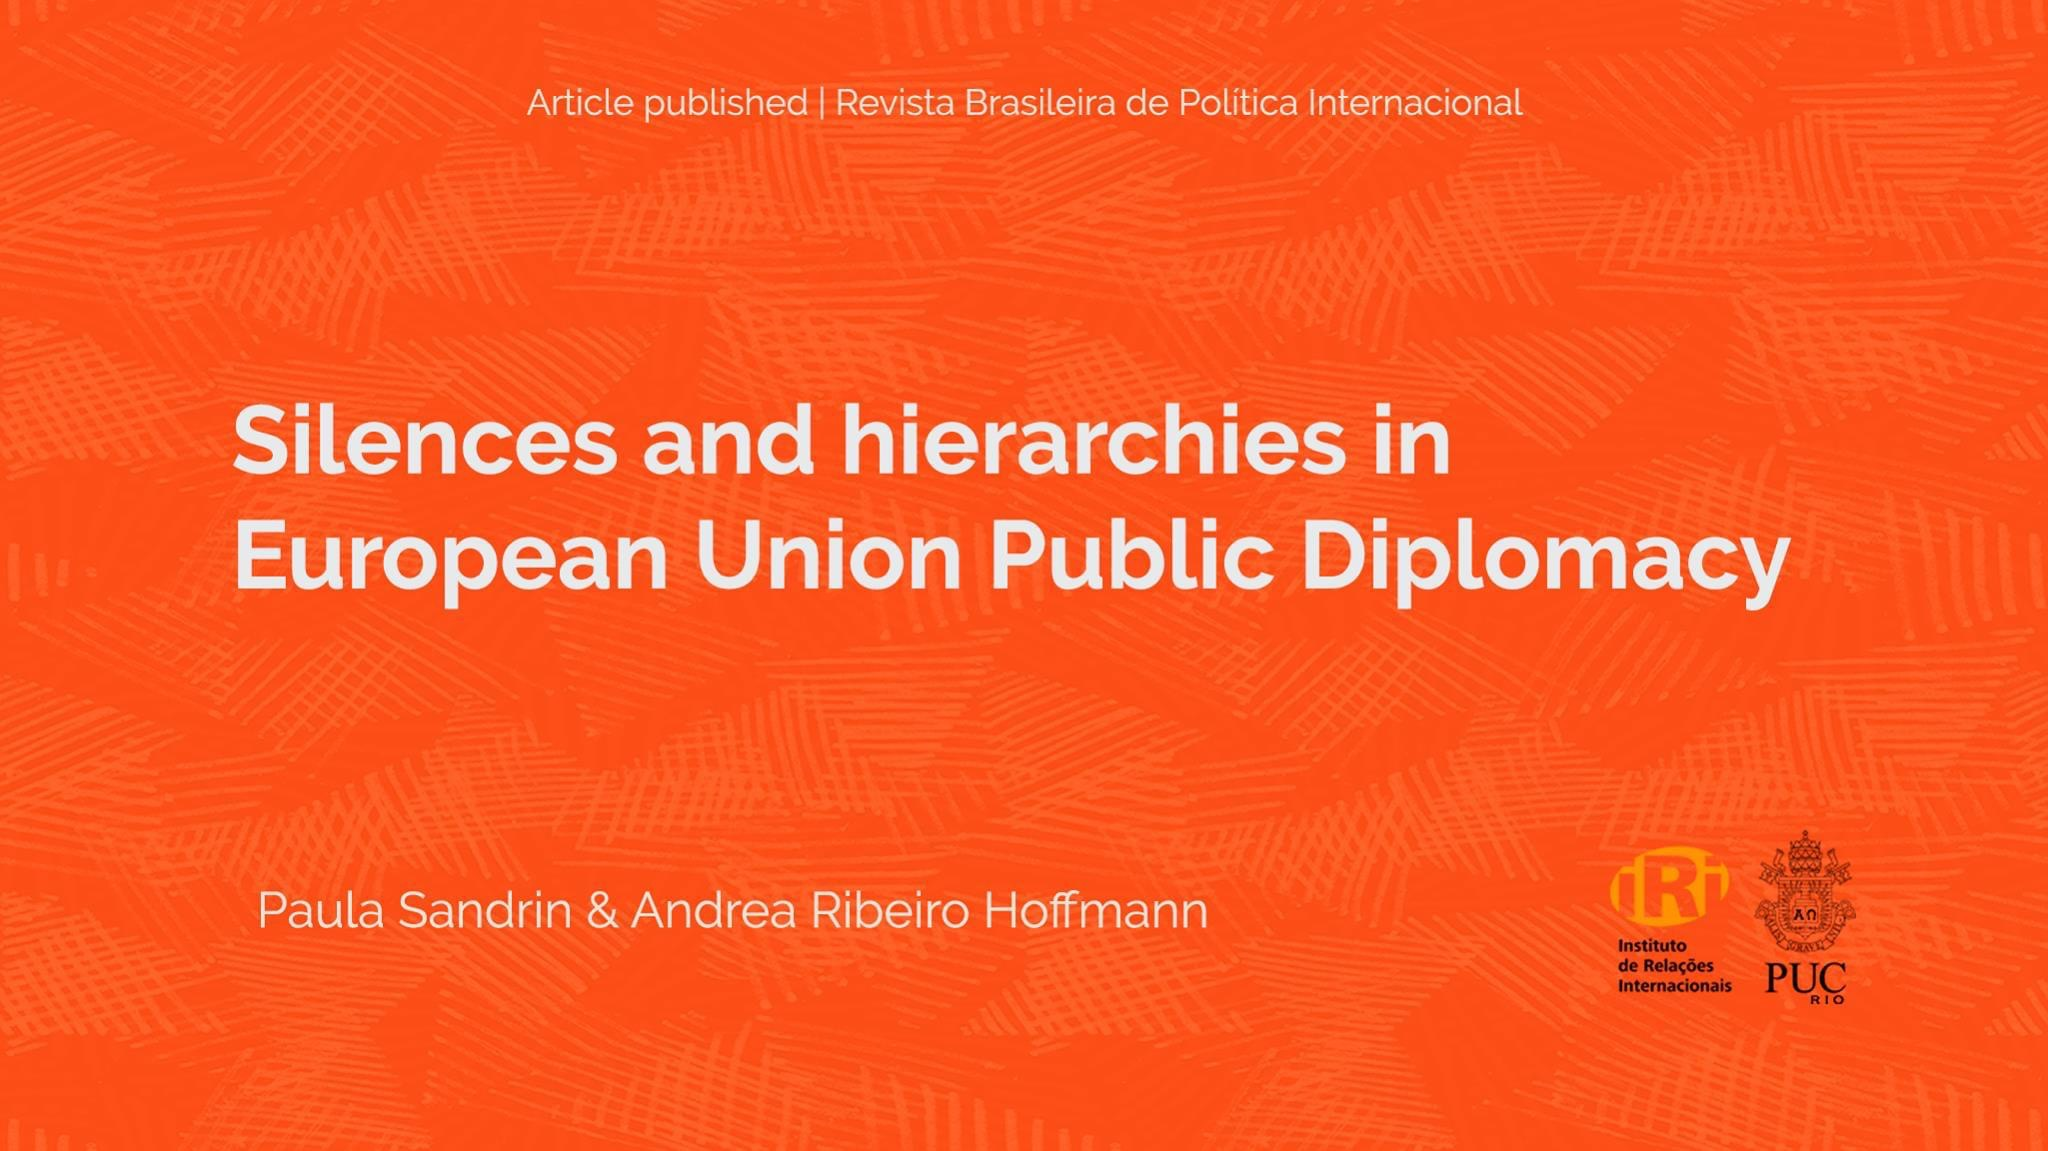 Silences and hierarchies in European Union Public Diplomacy